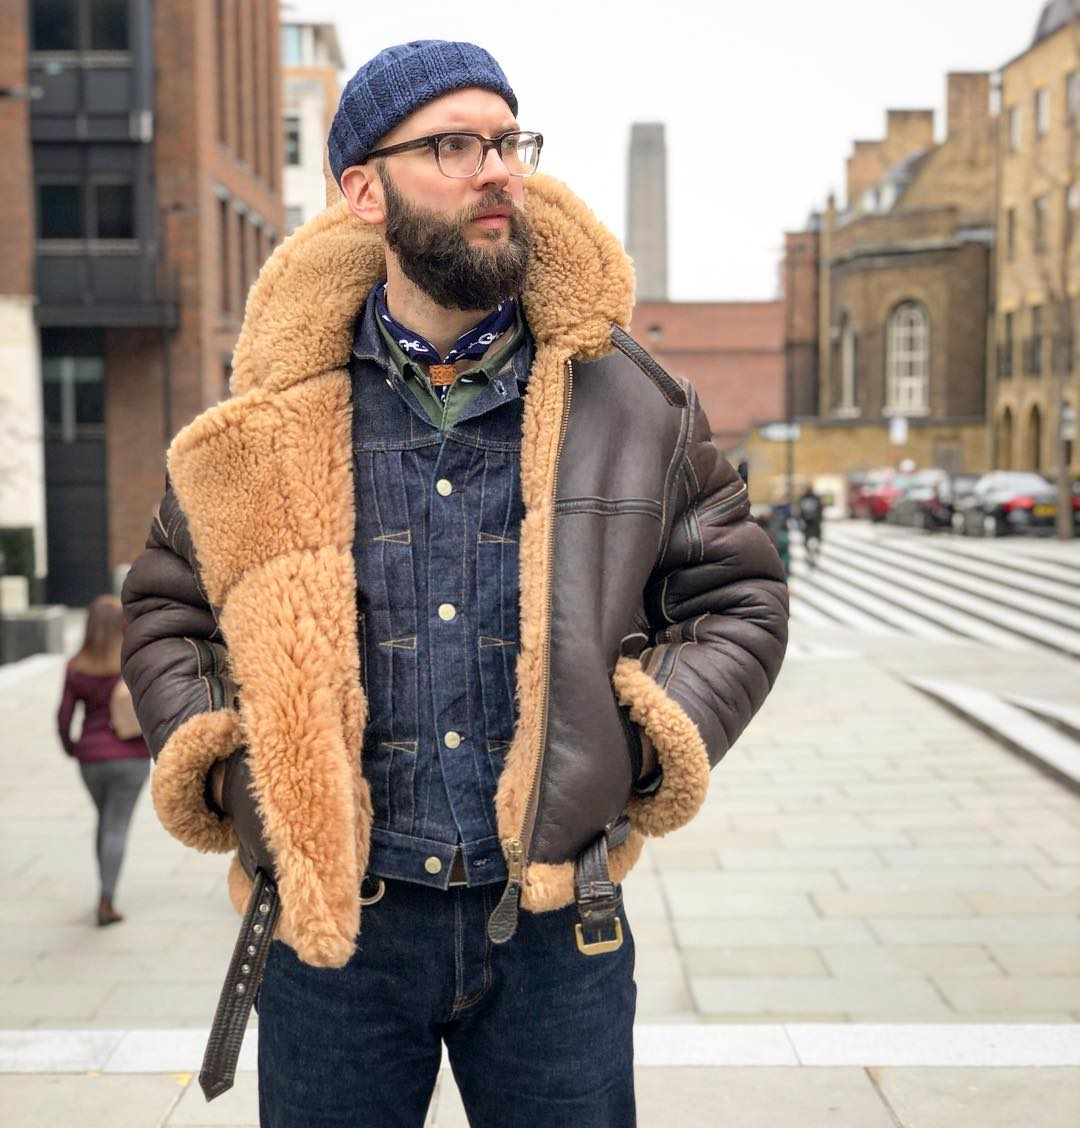 Blue Blooded, Instagrammer, illcutz, Denimhunters, shearling leather jacket